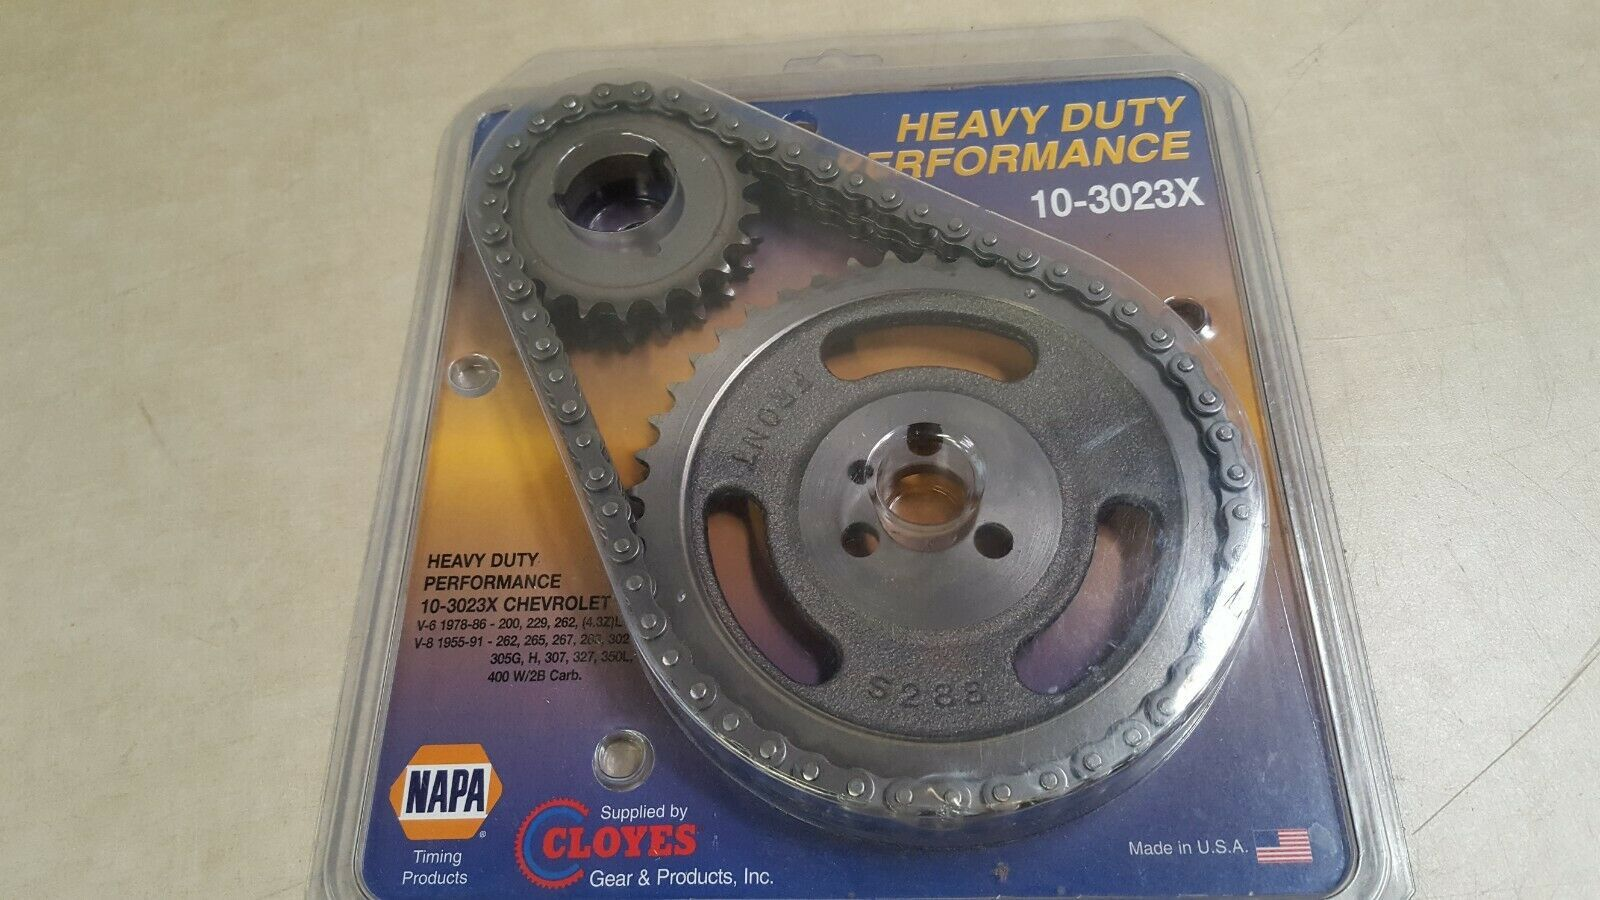 NAPA Heavy Duty Performance Timing Set - 3 Piece - NTP 103023X